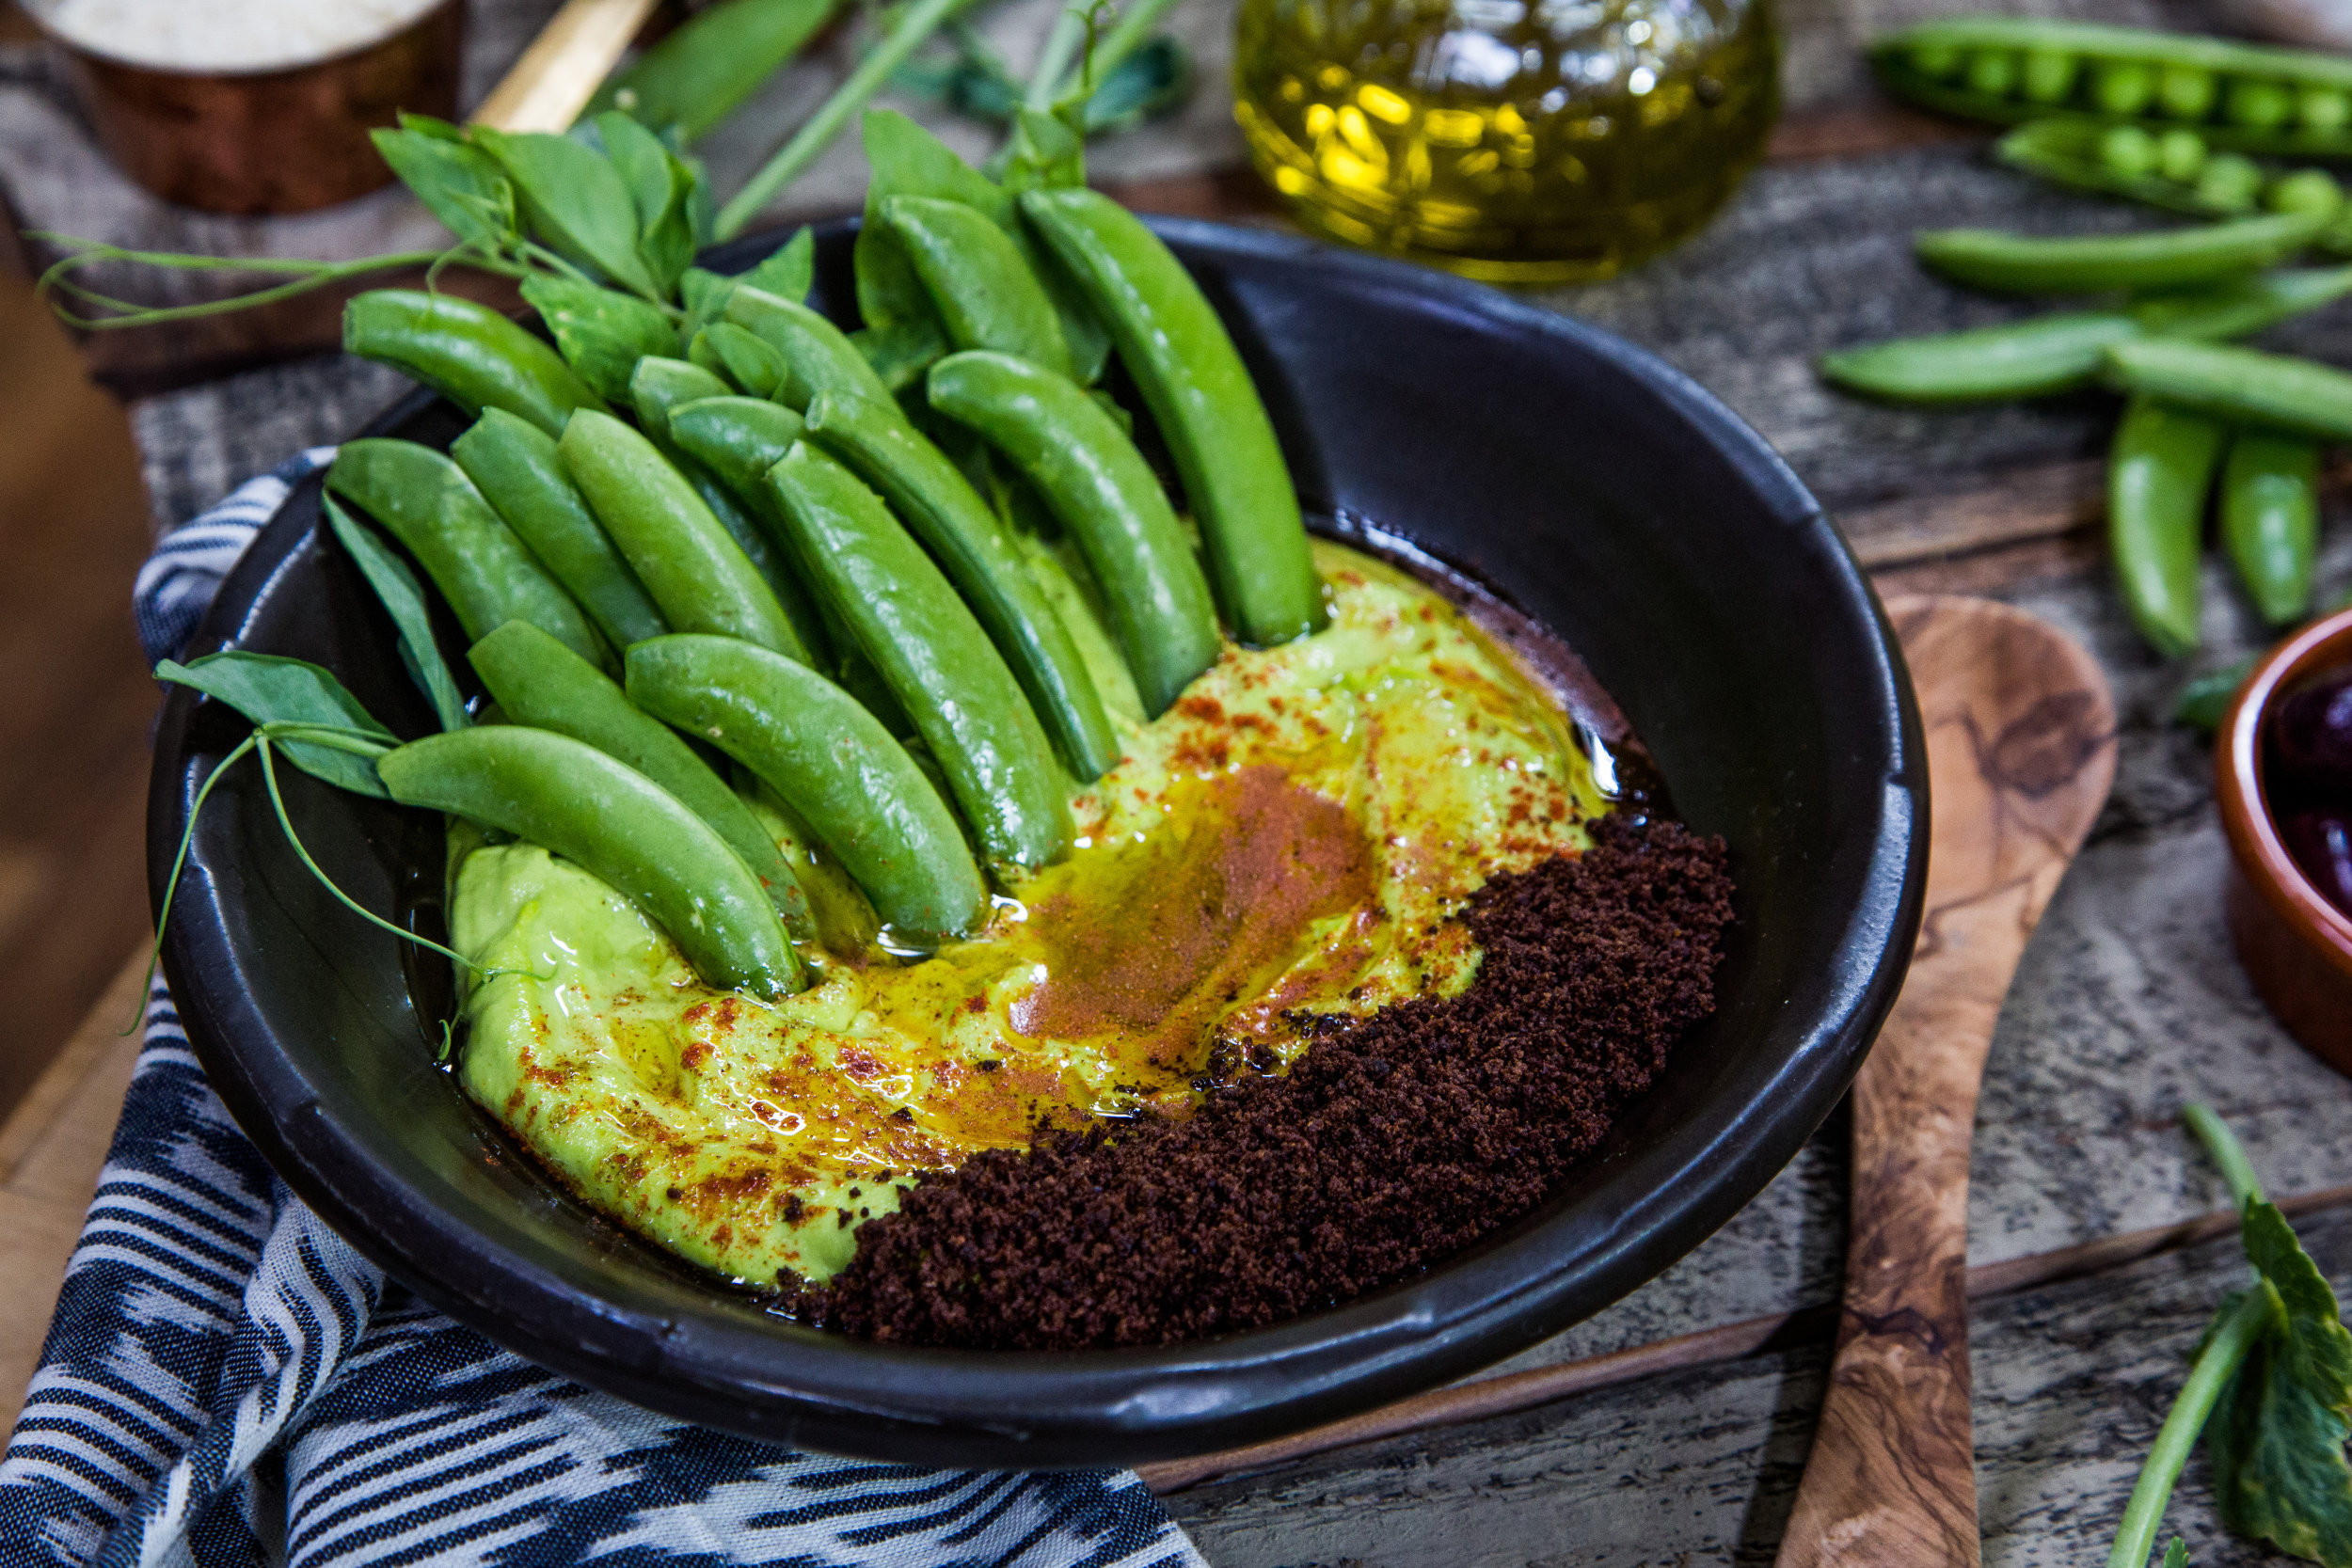 Recipes - Spring Pea Hummus with Black Olive Croutons | Home & Family ...